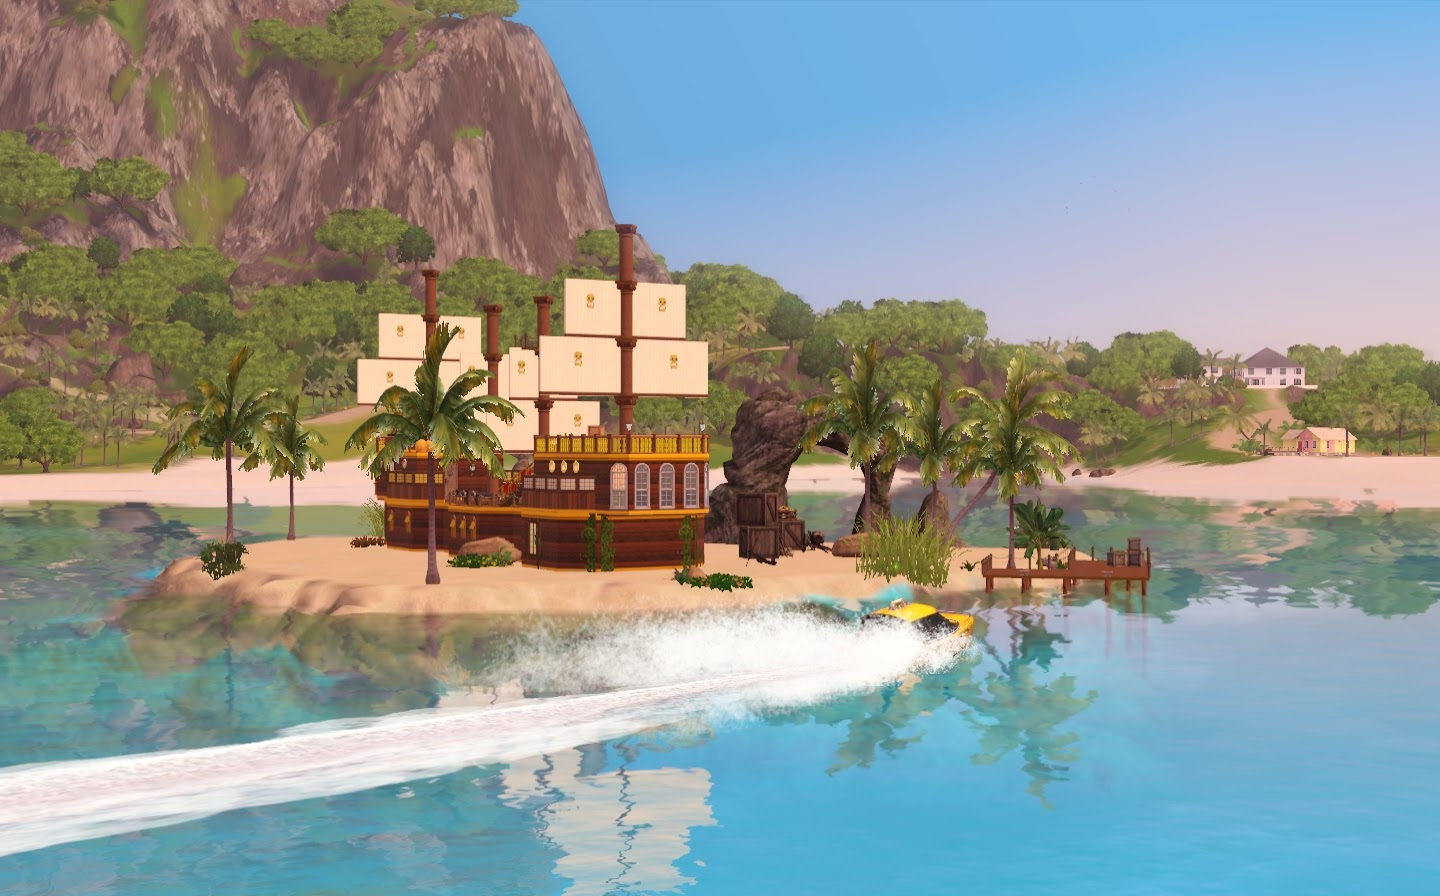 PirateResort%2B%25289%2529.jpg